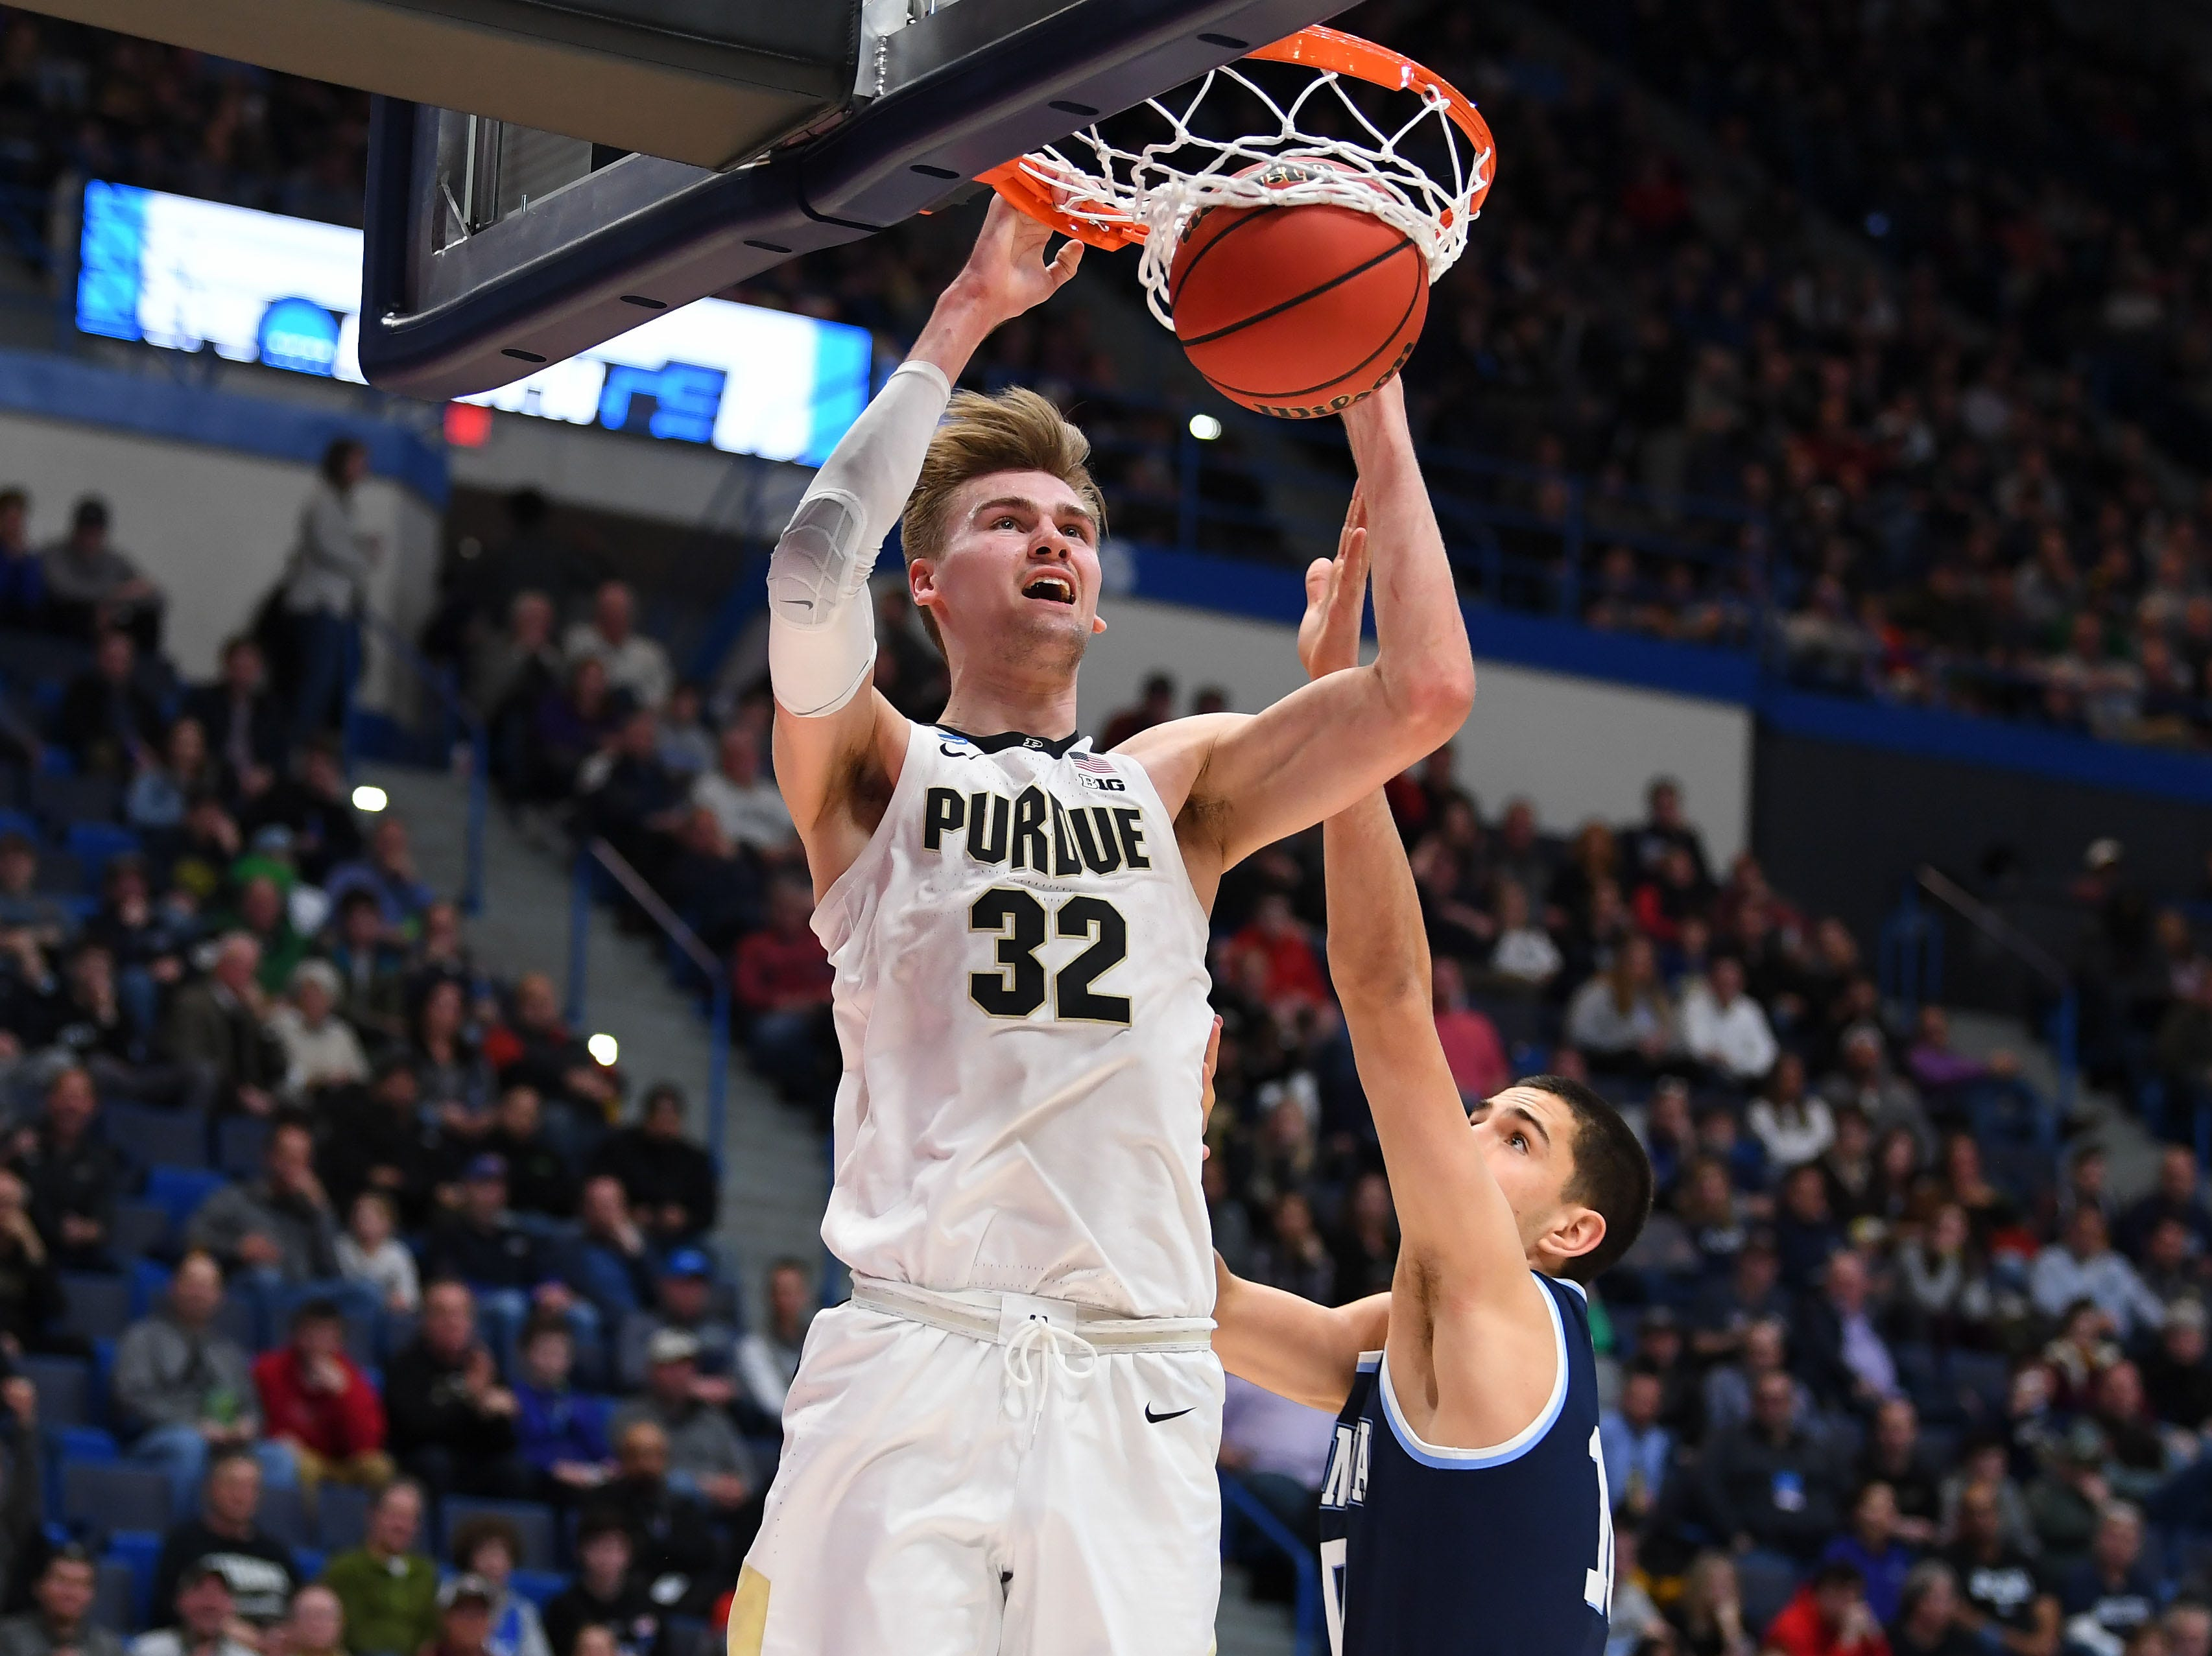 Mar 23, 2019; Hartford, CT, USA; Purdue Boilermakers center Matt Haarms (32) dunks and scores against the Villanova Wildcats during the second half of a game in the second round of the 2019 NCAA Tournament at XL Center. Mandatory Credit: Robert Deutsch-USA TODAY Sports